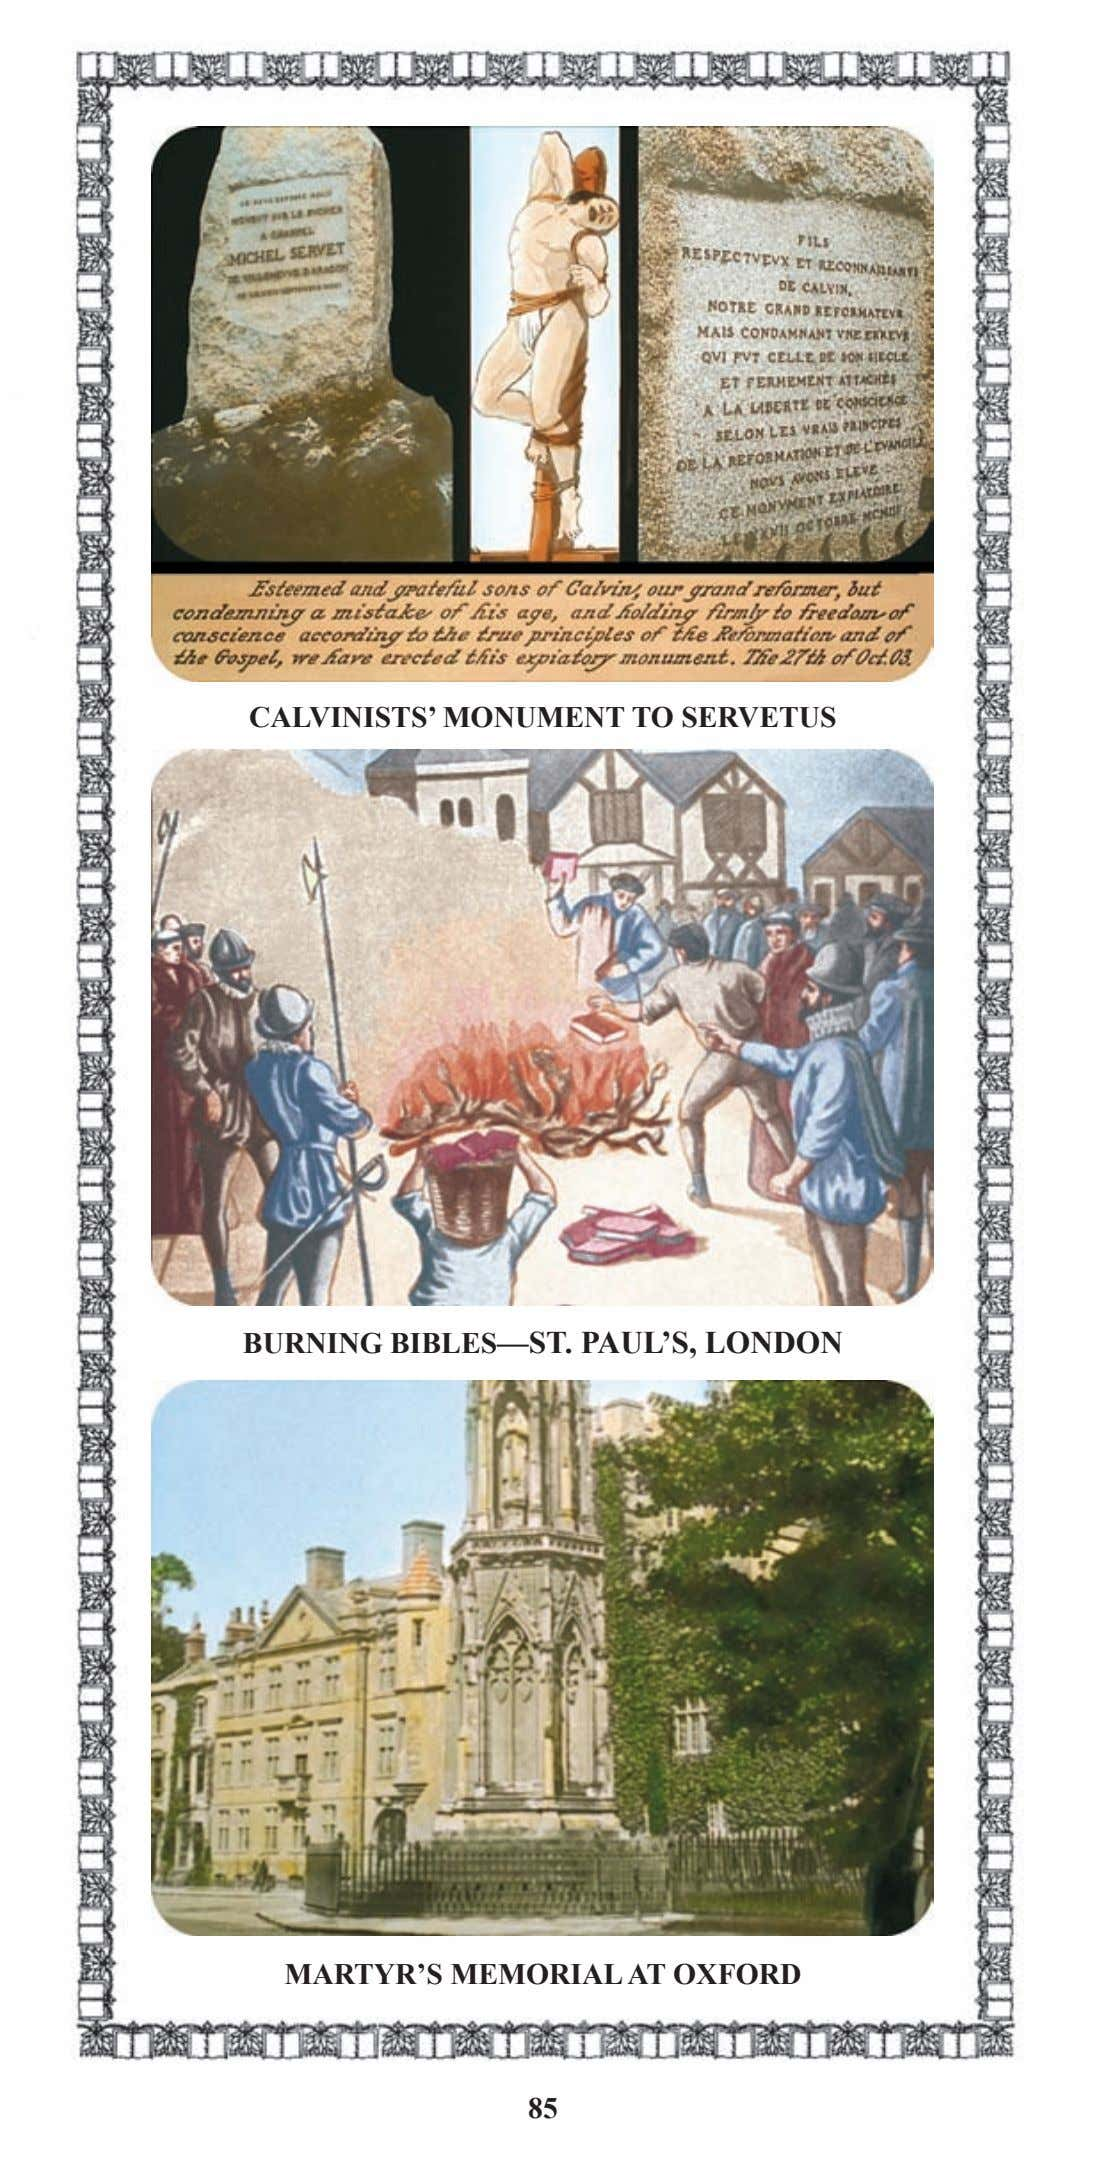 CALVINISTS' MONUMENT TO SERVETUS BURNING BIBLES—ST. PAUL'S, LONDON MARTYR'S MEMORIAL AT OXFORD 85